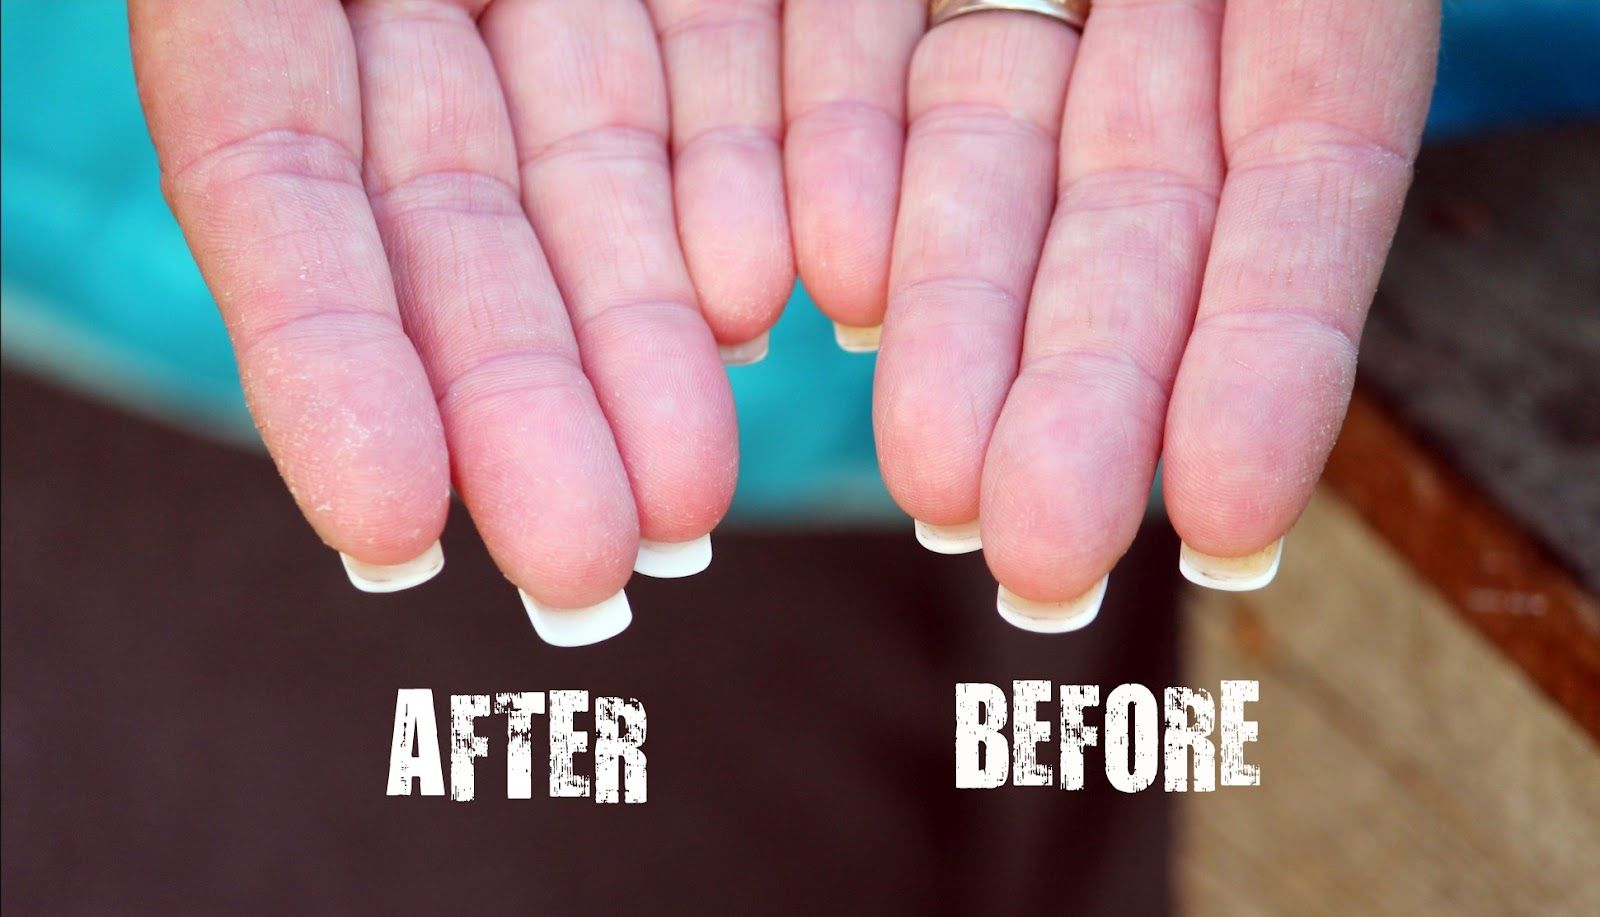 Cleaning Underneath Acrylic Nails Hydrogen Peroxide Baking Soda Make A Paste And Brush On Rinse How To Do Nails Clean Nails Acrylic Nails